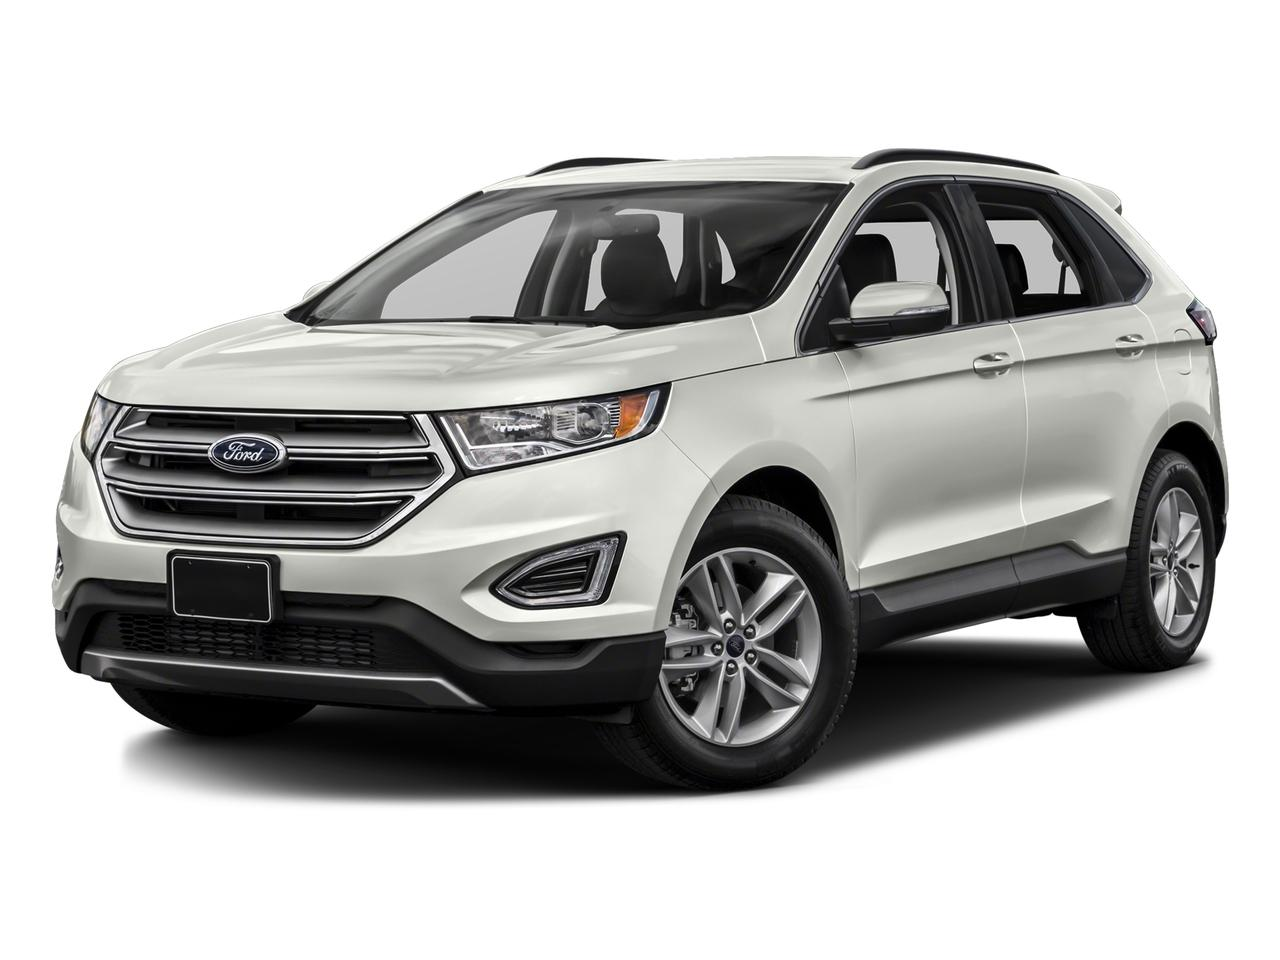 2016 Ford Edge Vehicle Photo in Lawrenceville, NJ 08648